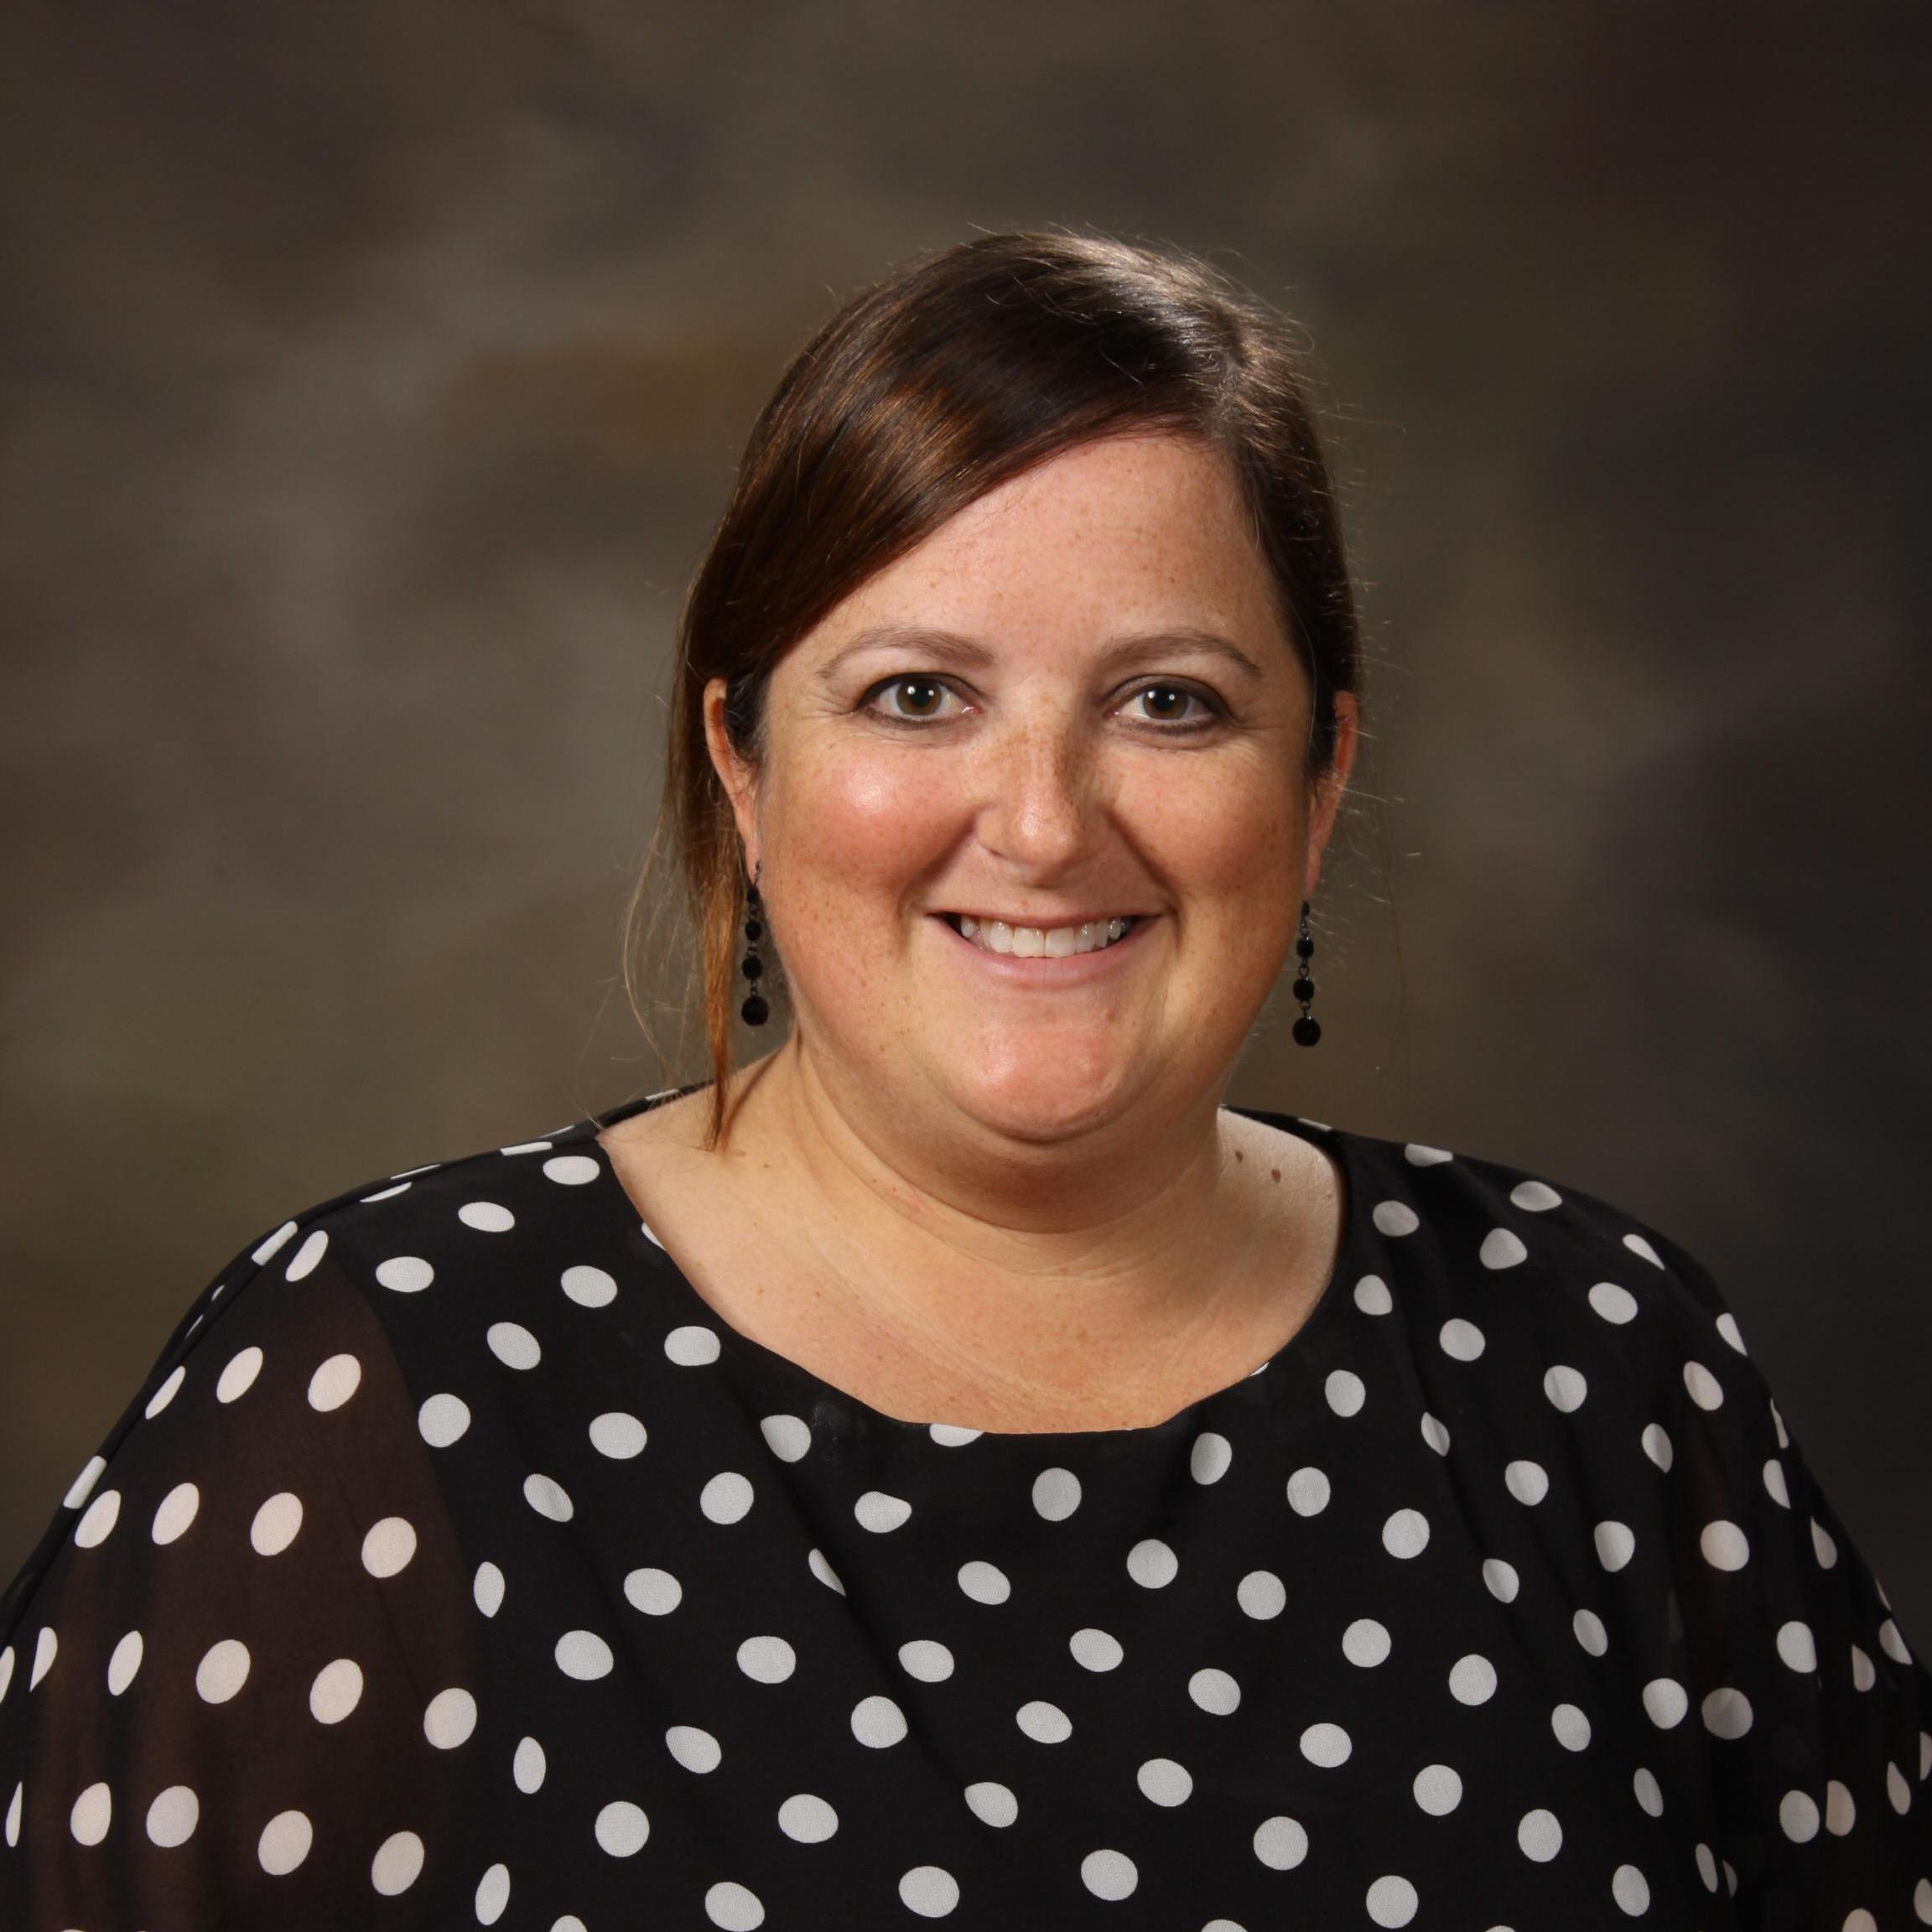 Jill McHenry - Math & Social Studies's Profile Photo